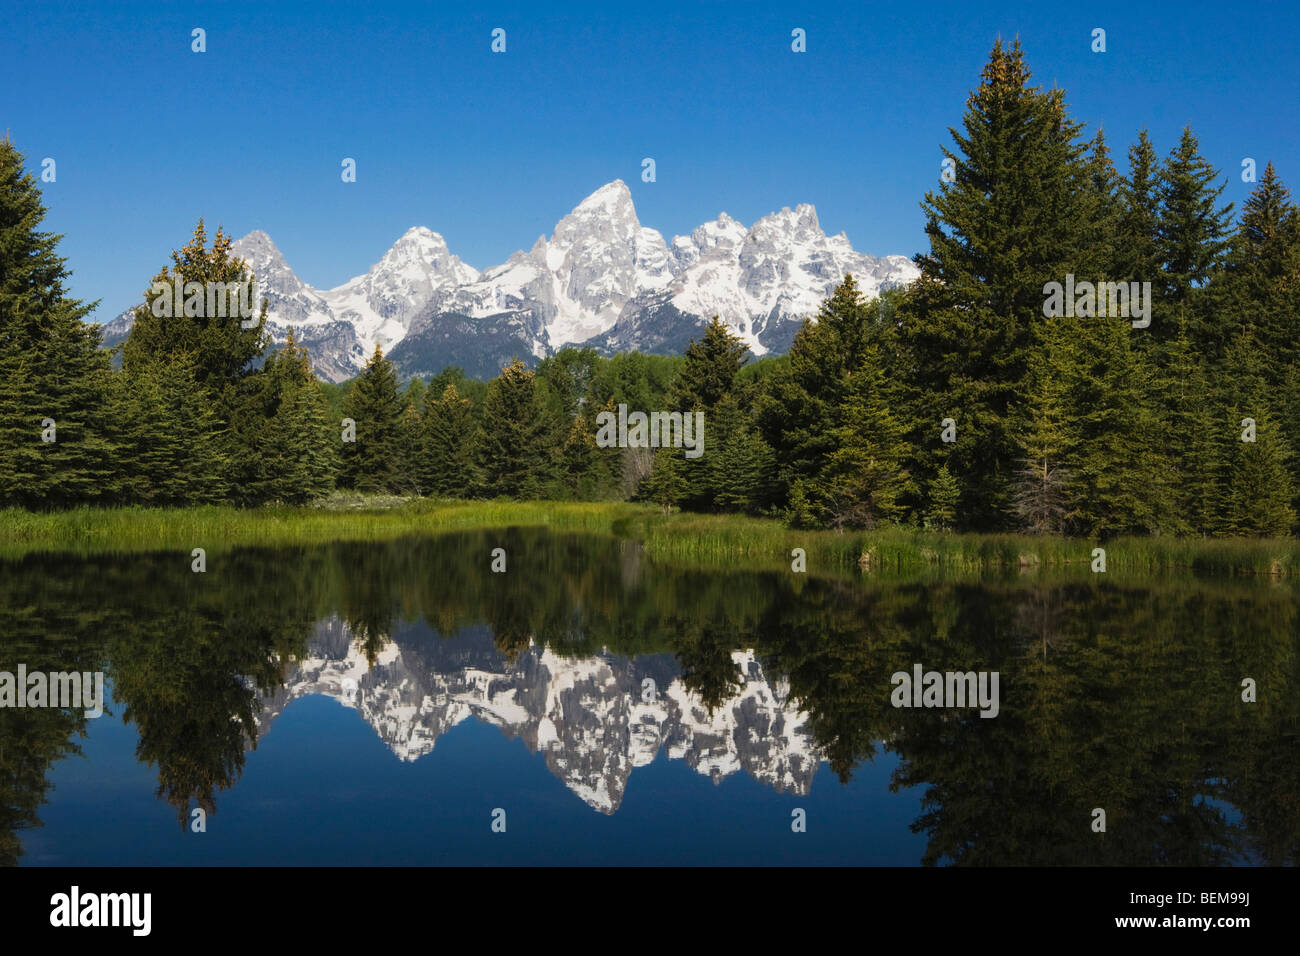 Tetons se reflétant dans l'étang, l'atterrissage Schwabacher, Grand Teton NP, Wyoming, USA Photo Stock